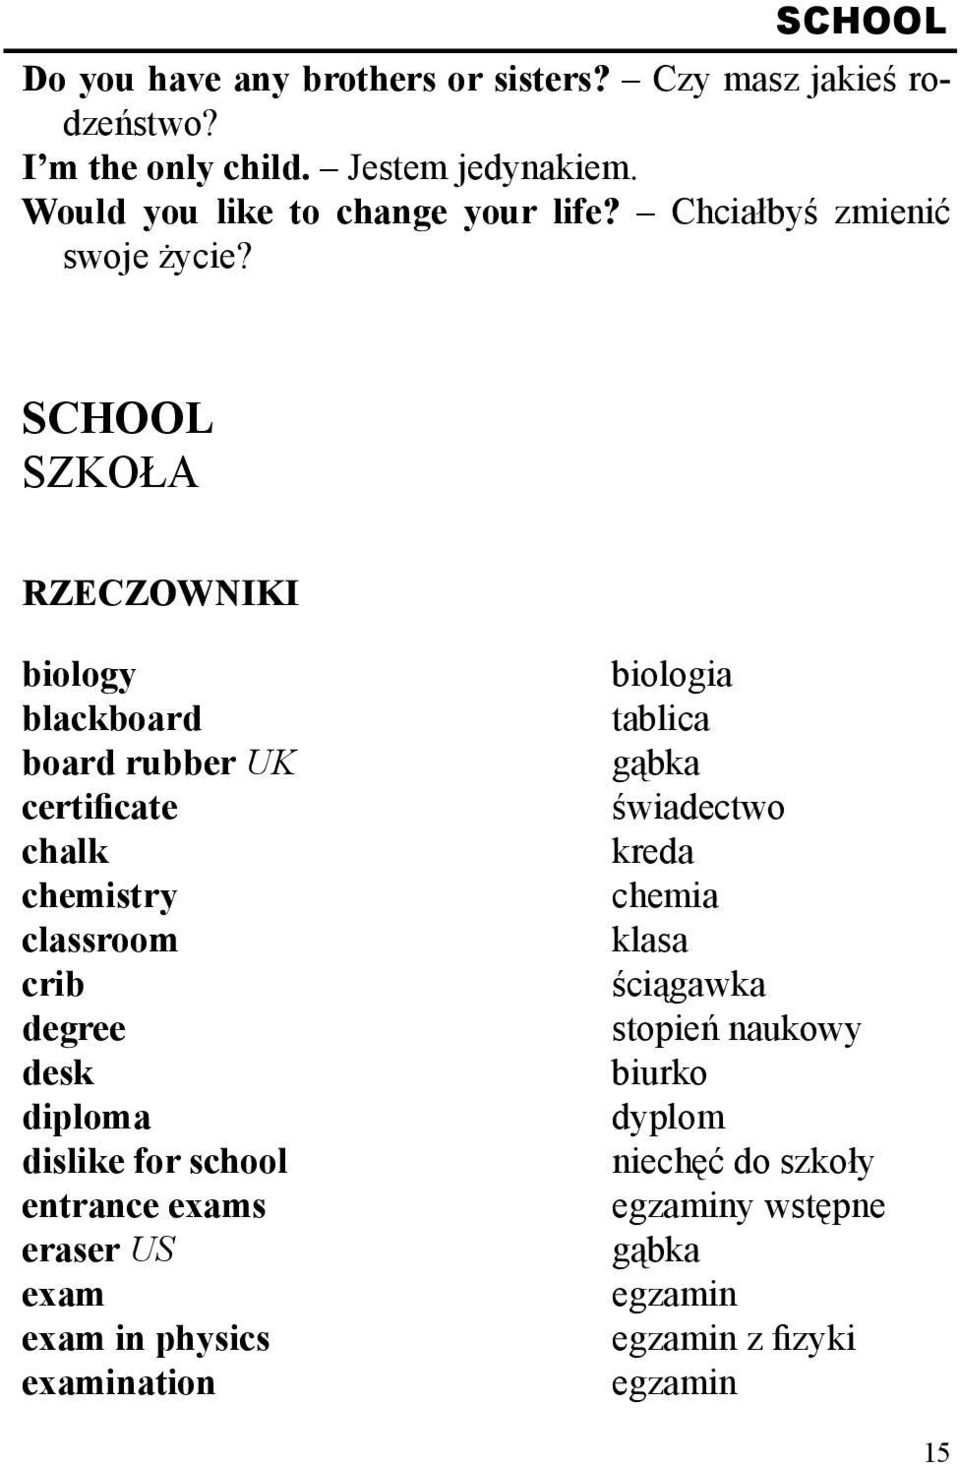 SCHOOL SZKOŁA RZECZOWNIKI biology blackboard board rubber UK certificate chalk chemistry classroom crib degree desk diploma dislike for